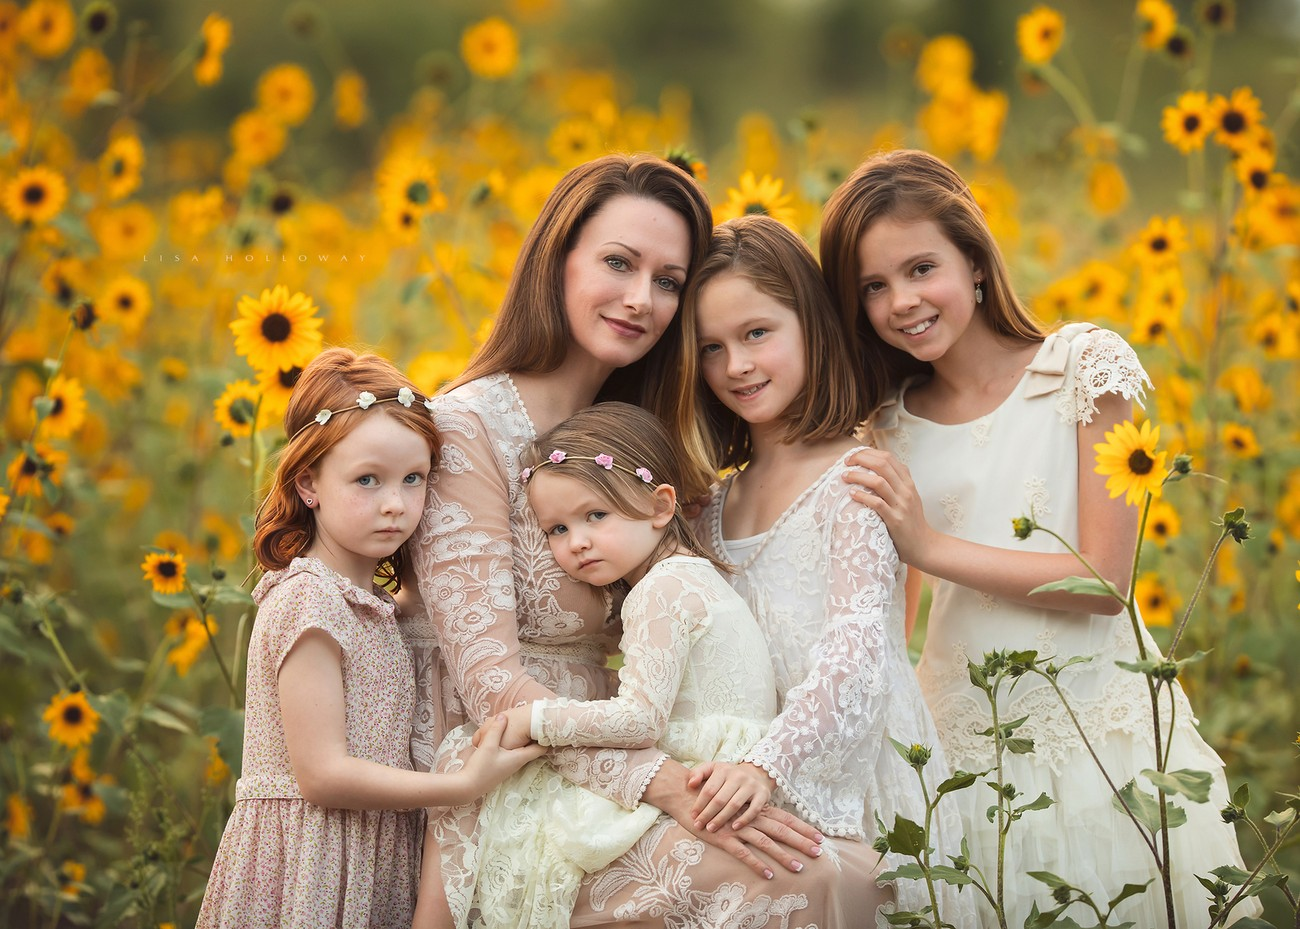 The Family Photo Contest Winner